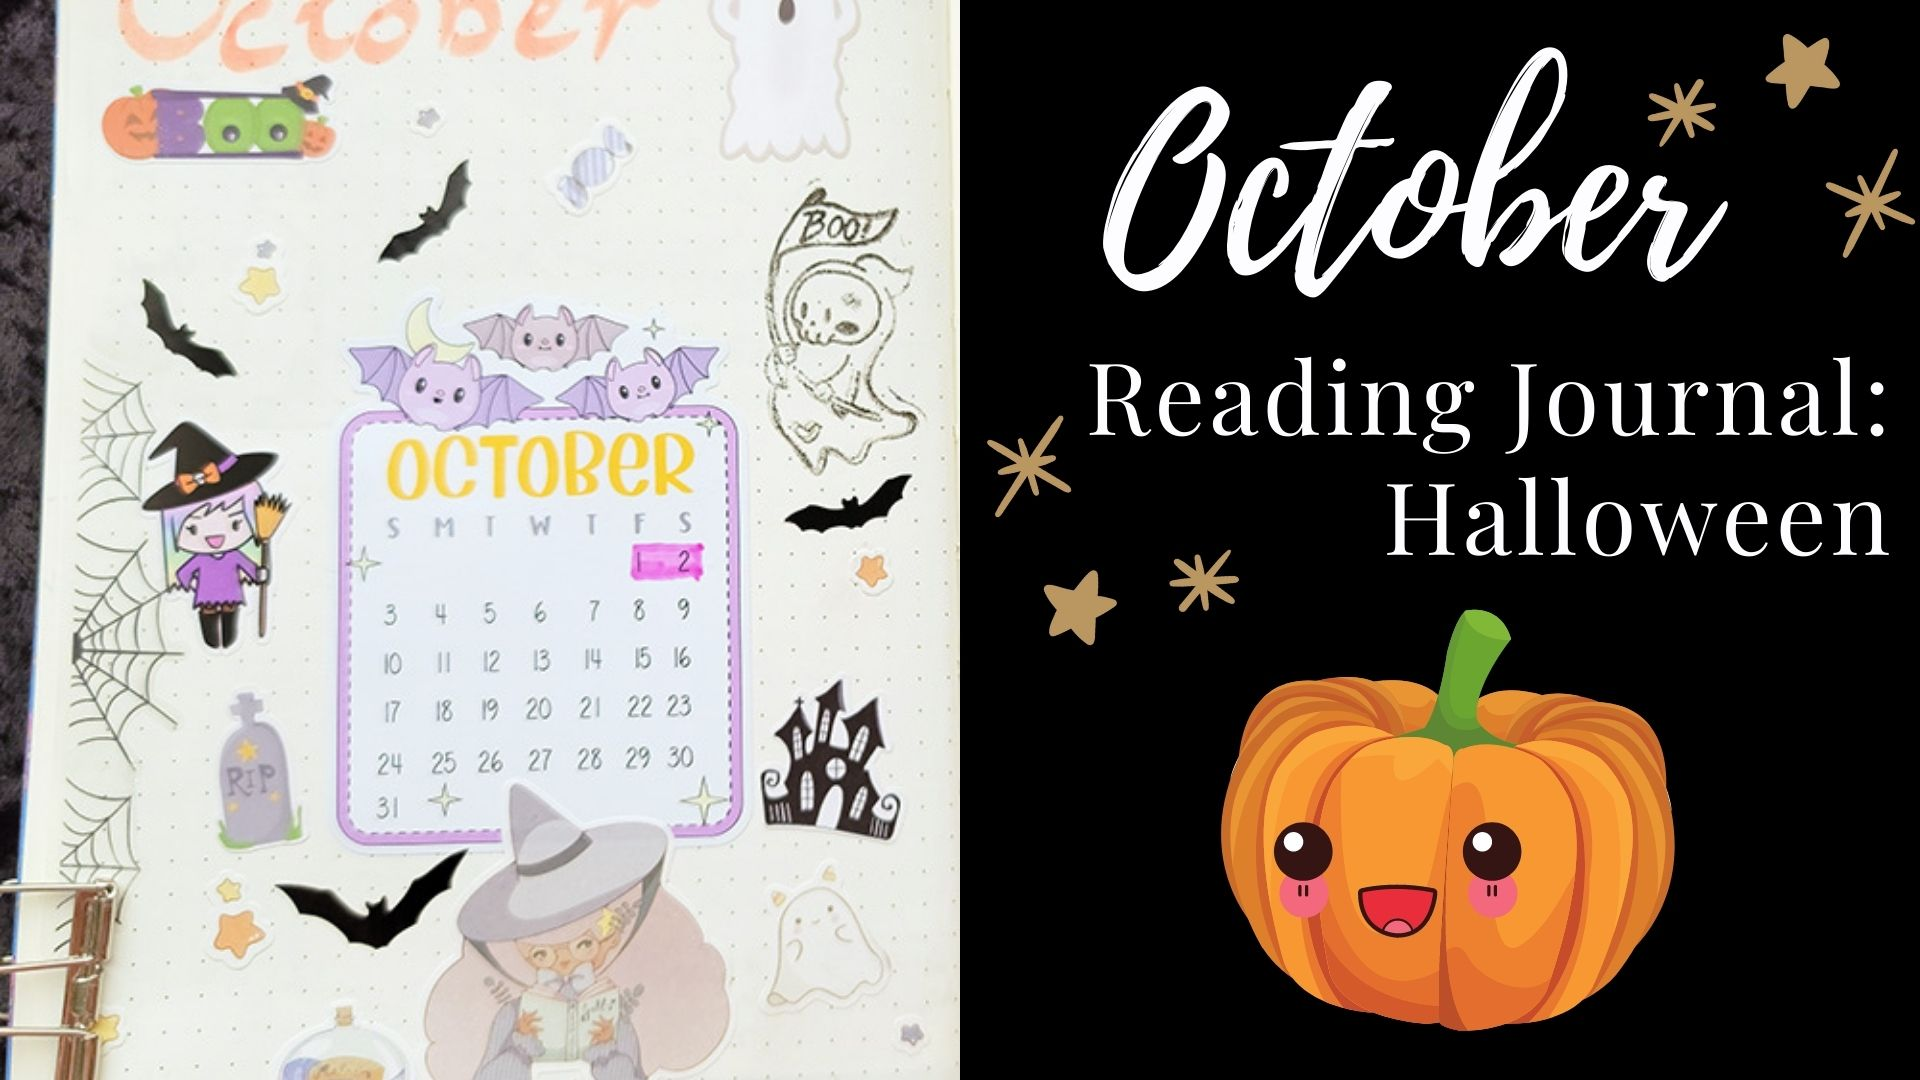 You are currently viewing October Reading Journal: Halloween Theme!